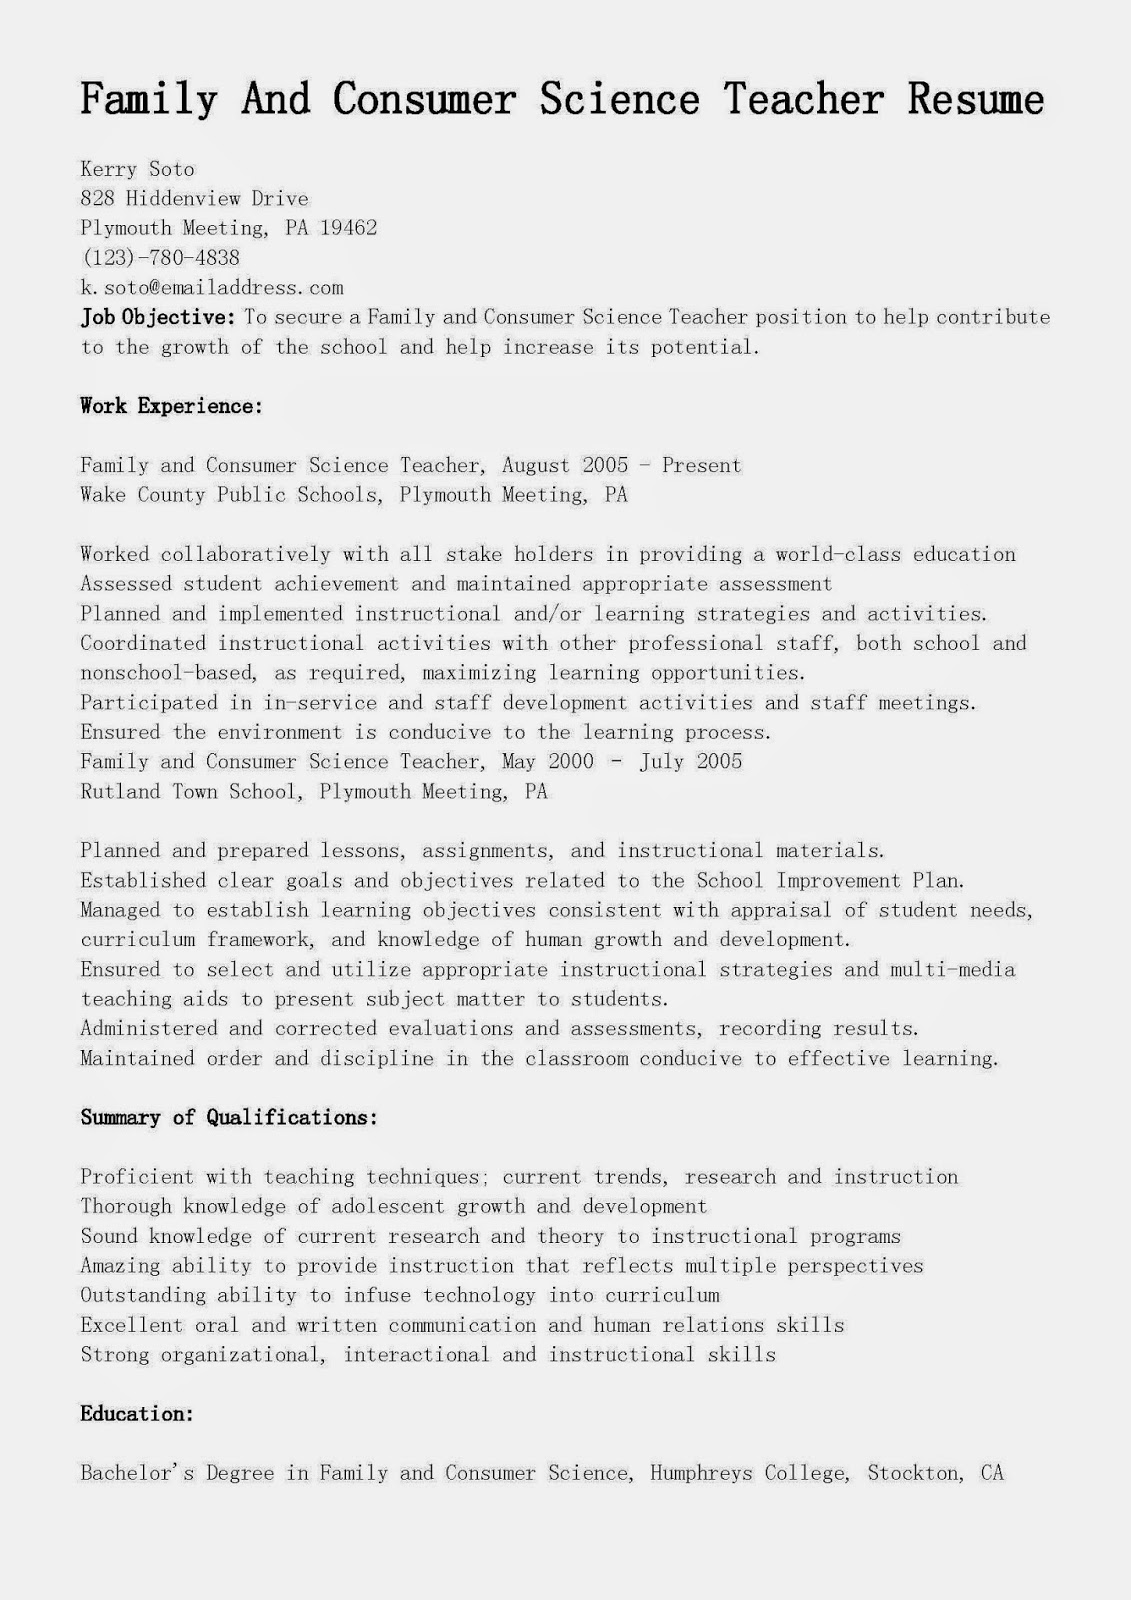 trends in family and consumer sciences induced info science teacher resume motion Resume Family And Consumer Science Teacher Resume